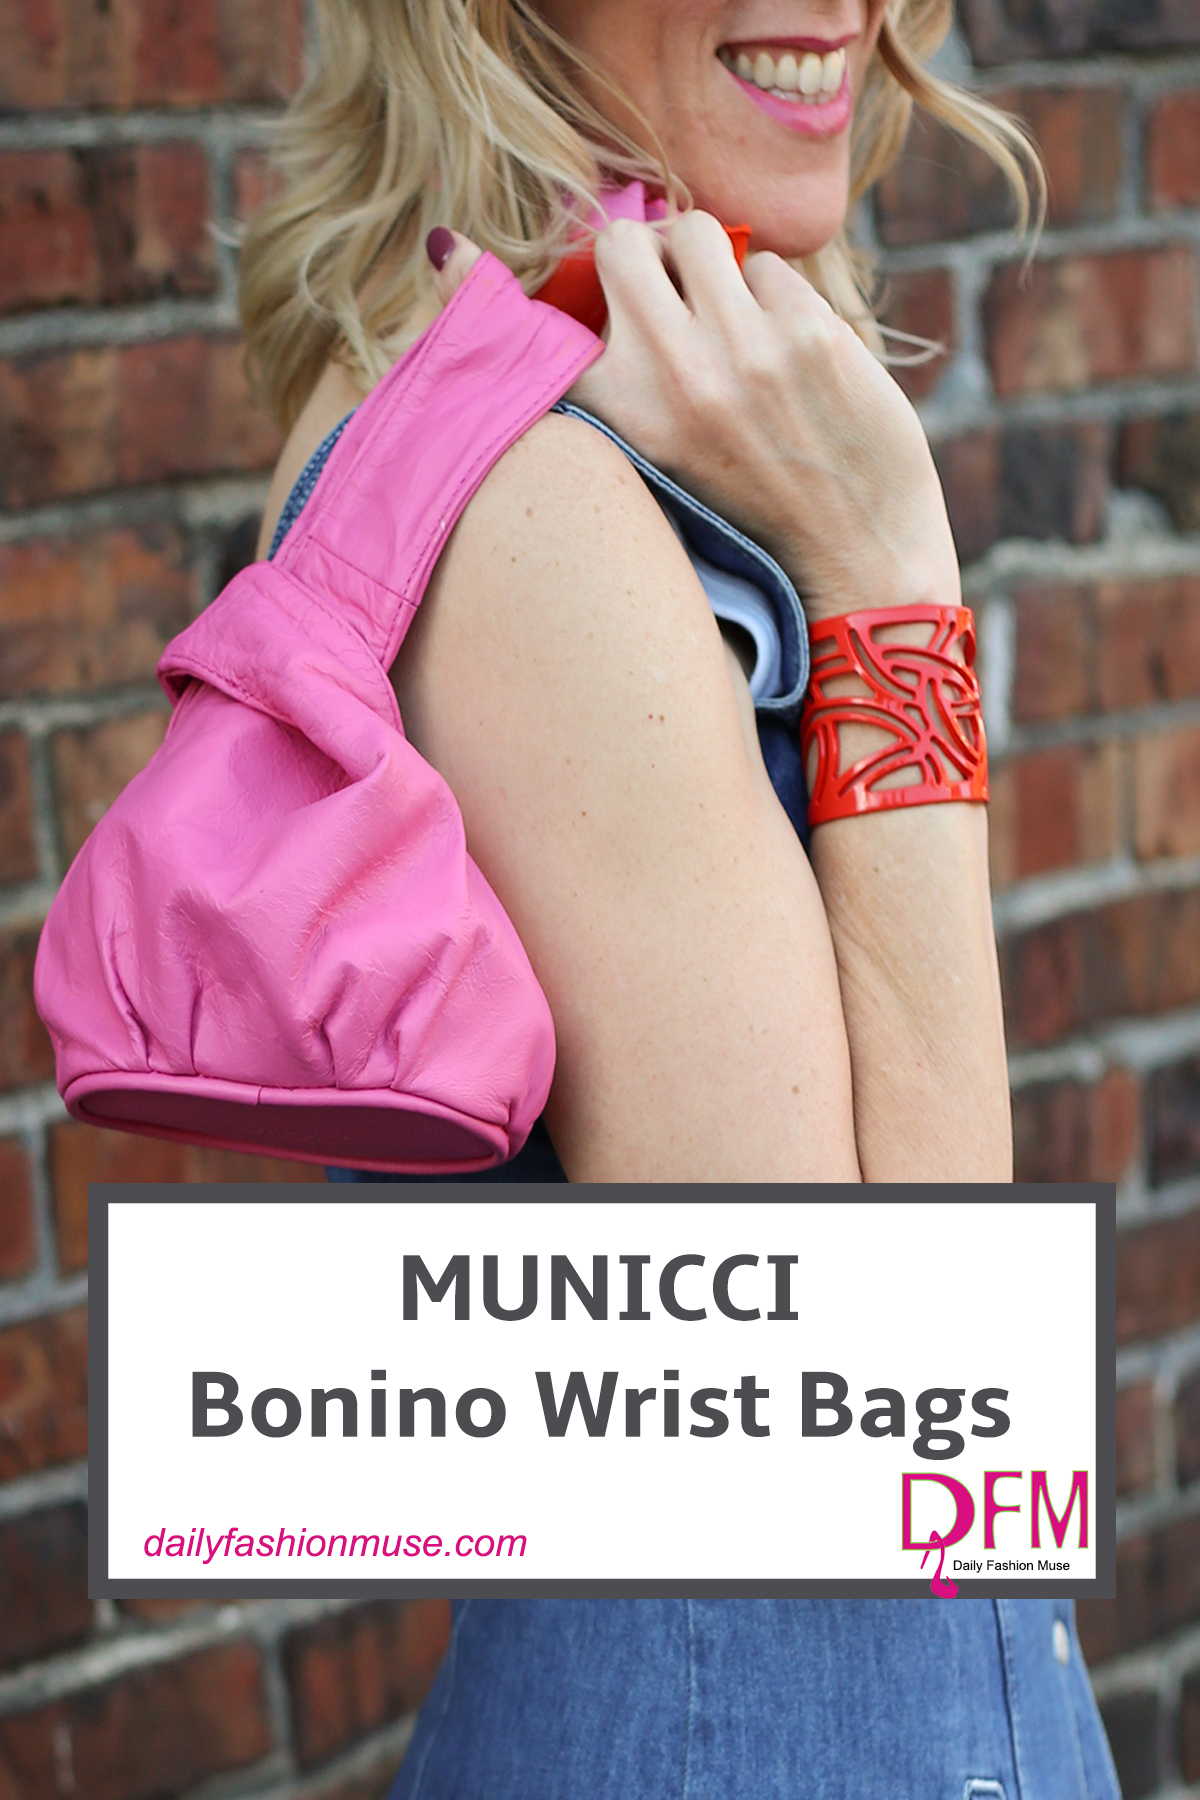 This hand's free wrist bag is perfect for a night out. Just big enough to slip all your essentials into, yet small enough to take with your everywhere. Hit the dance floor, sip your cocktail, whatever the night brings, you will not have to worry about leaving your bag unattended.